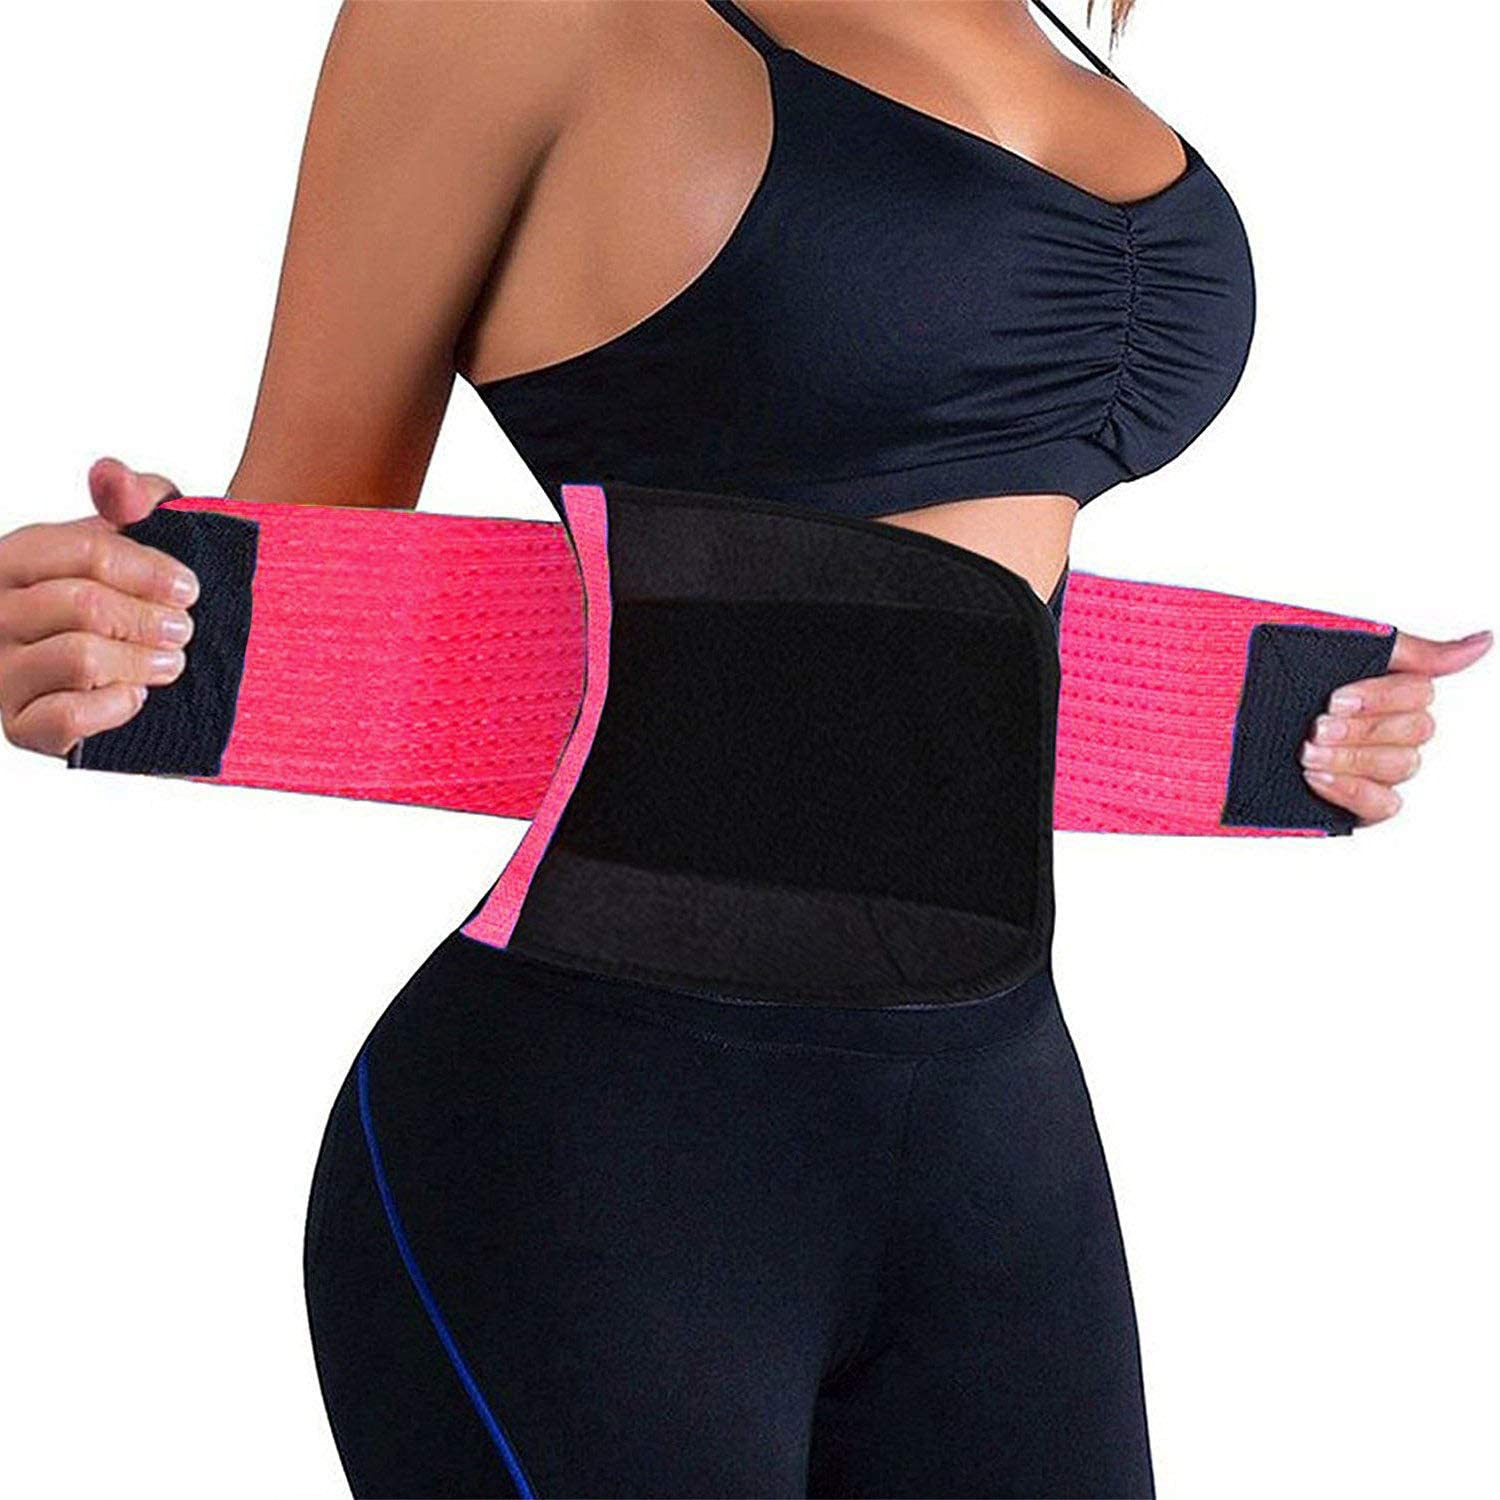 QEESMEI Waist Trainer Belt for Women Man – Waist Cincher Trimmer Weight Loss Ab Belt – Slimming Body Shaper Belt